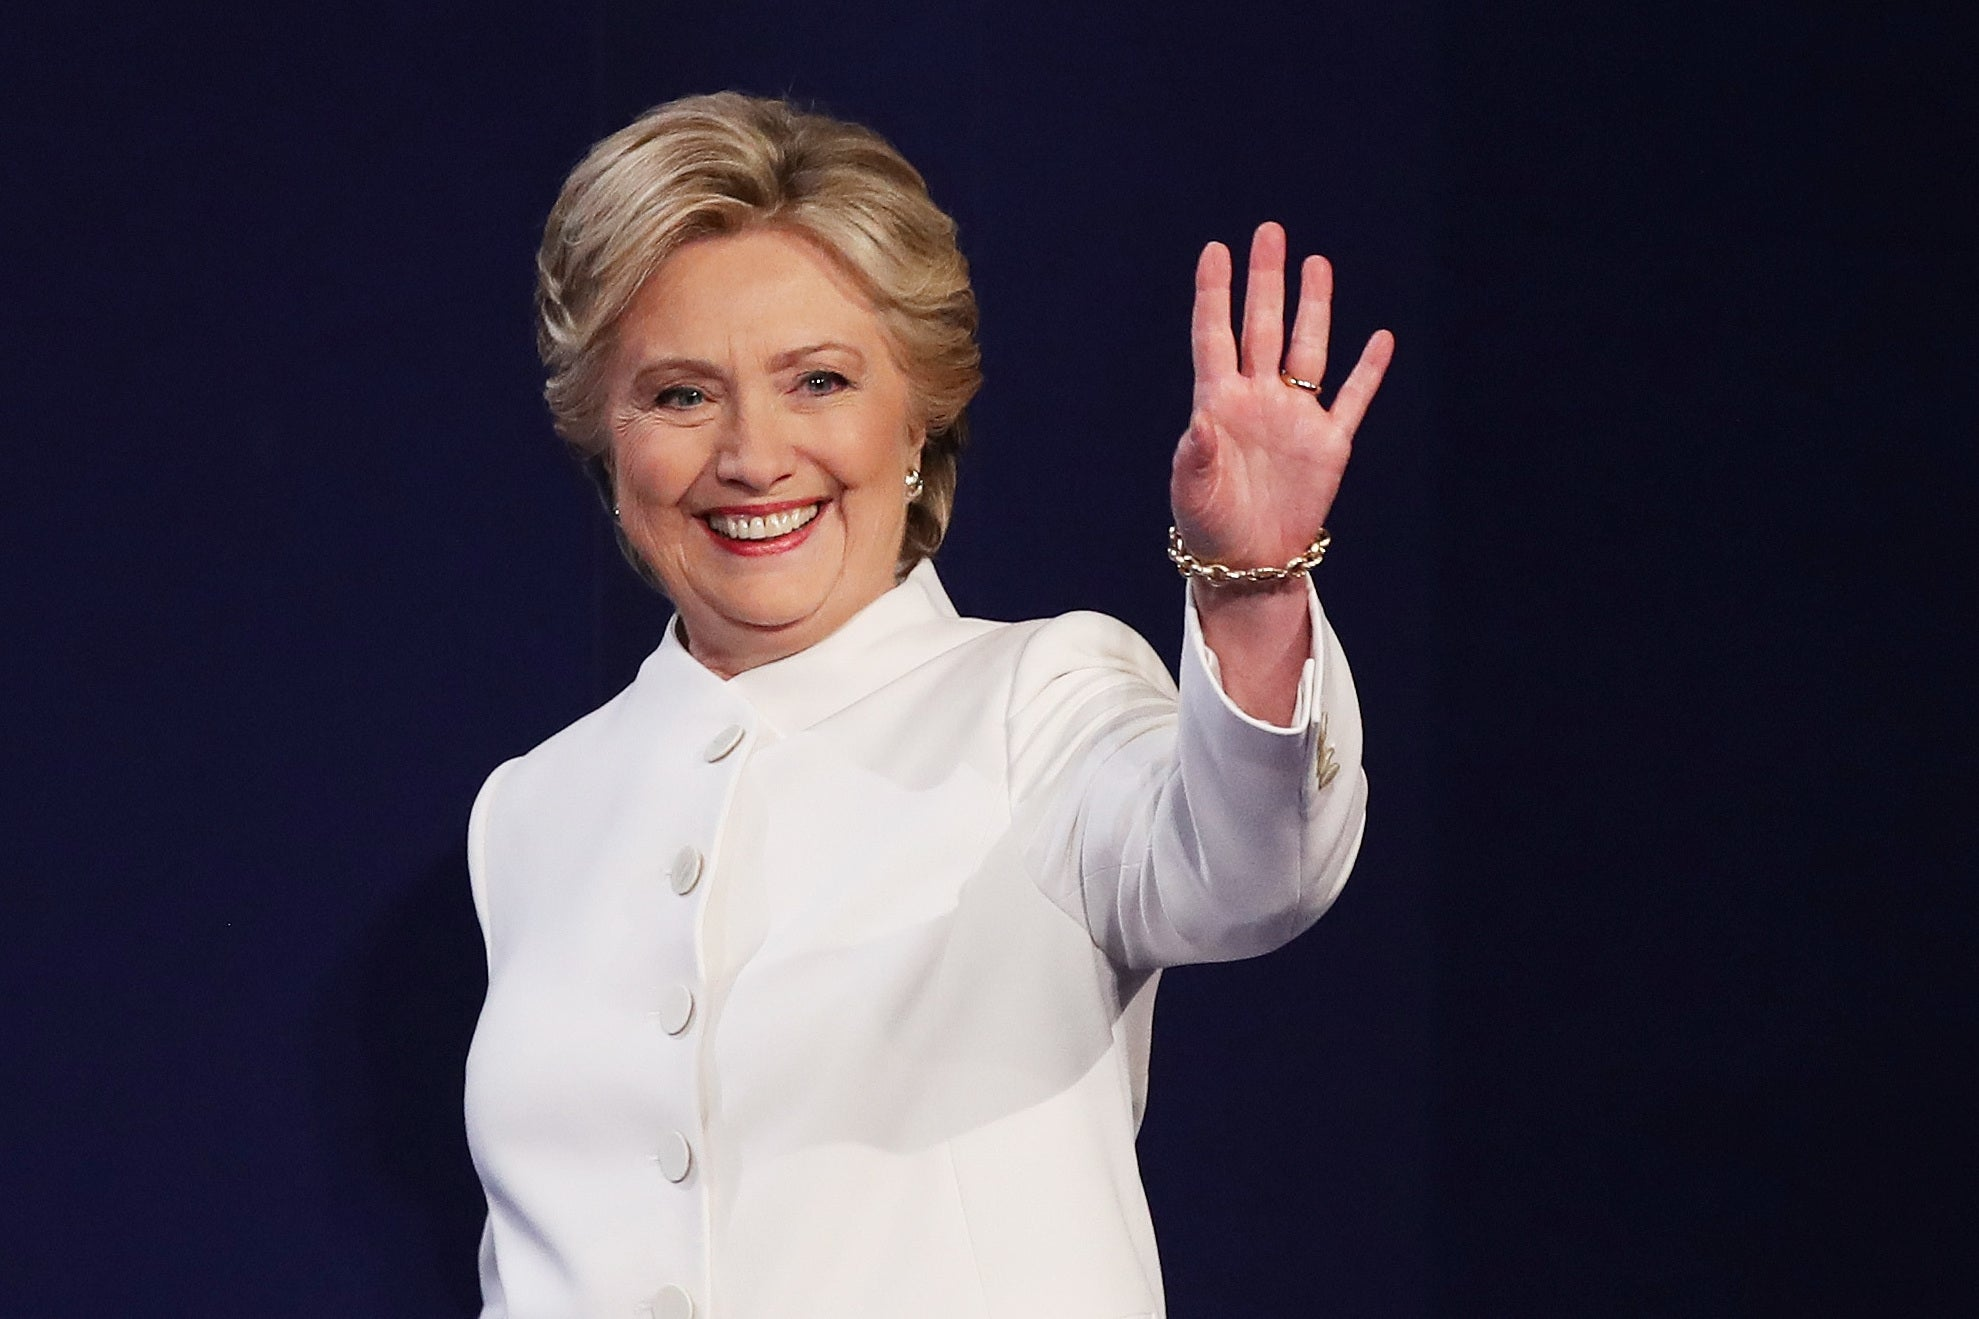 Opinion: Hillary Clinton reminded me that when it comes to equal pay, women should never stop fighting